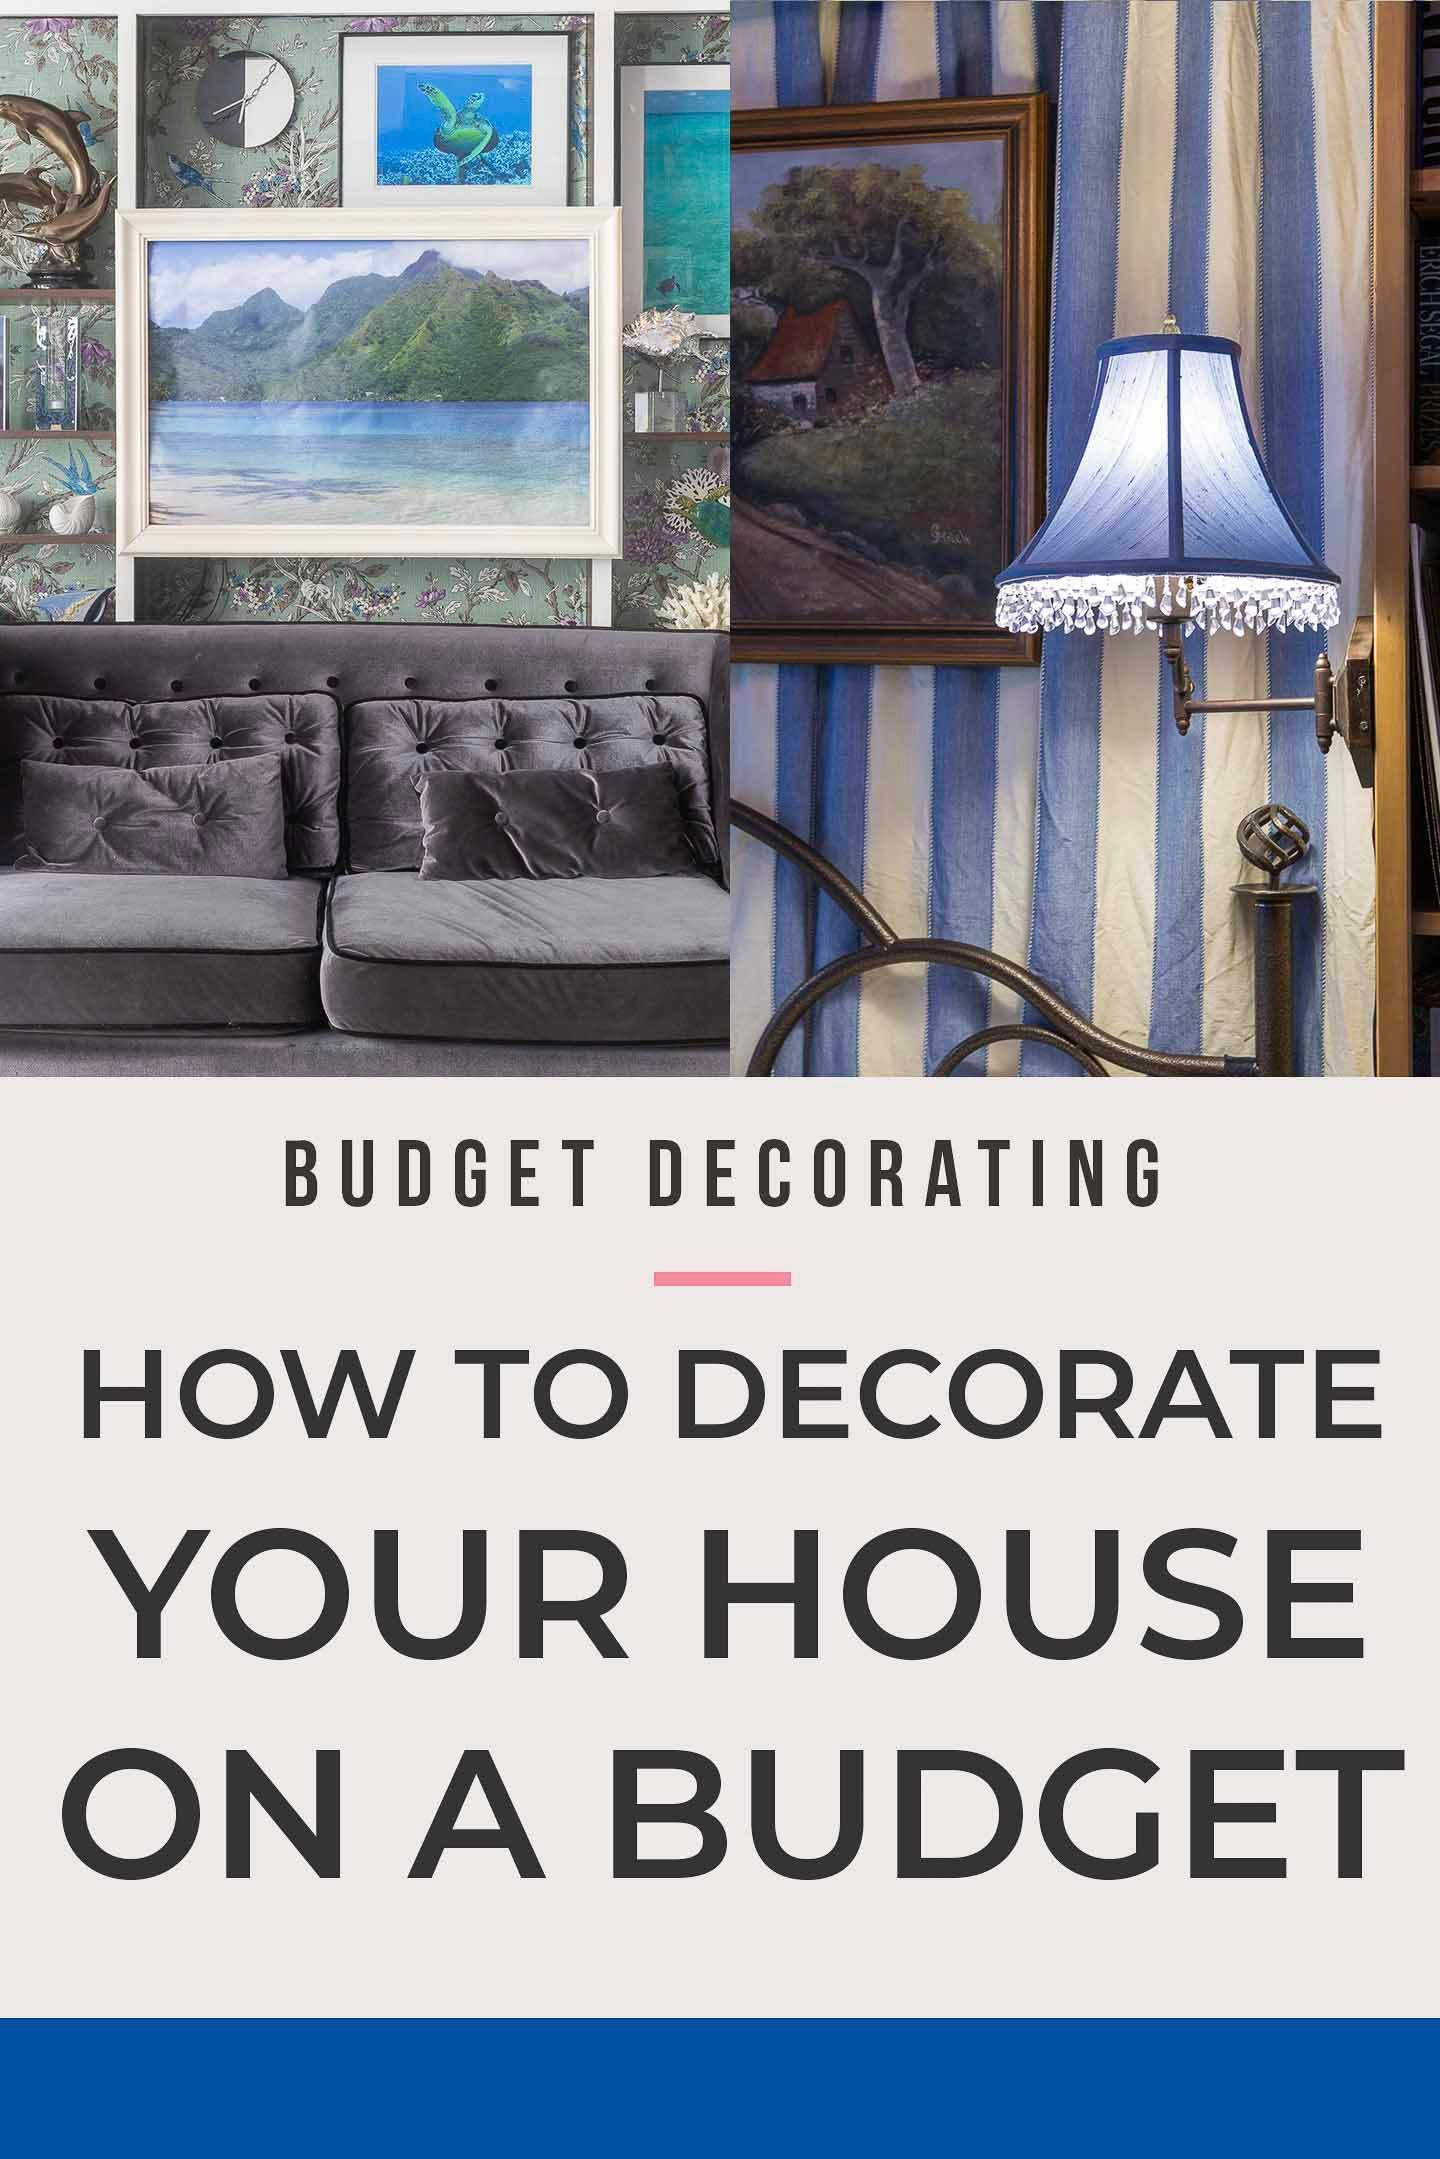 12 Ways To Decorate Your Home On A Budget Decorating On A Budget